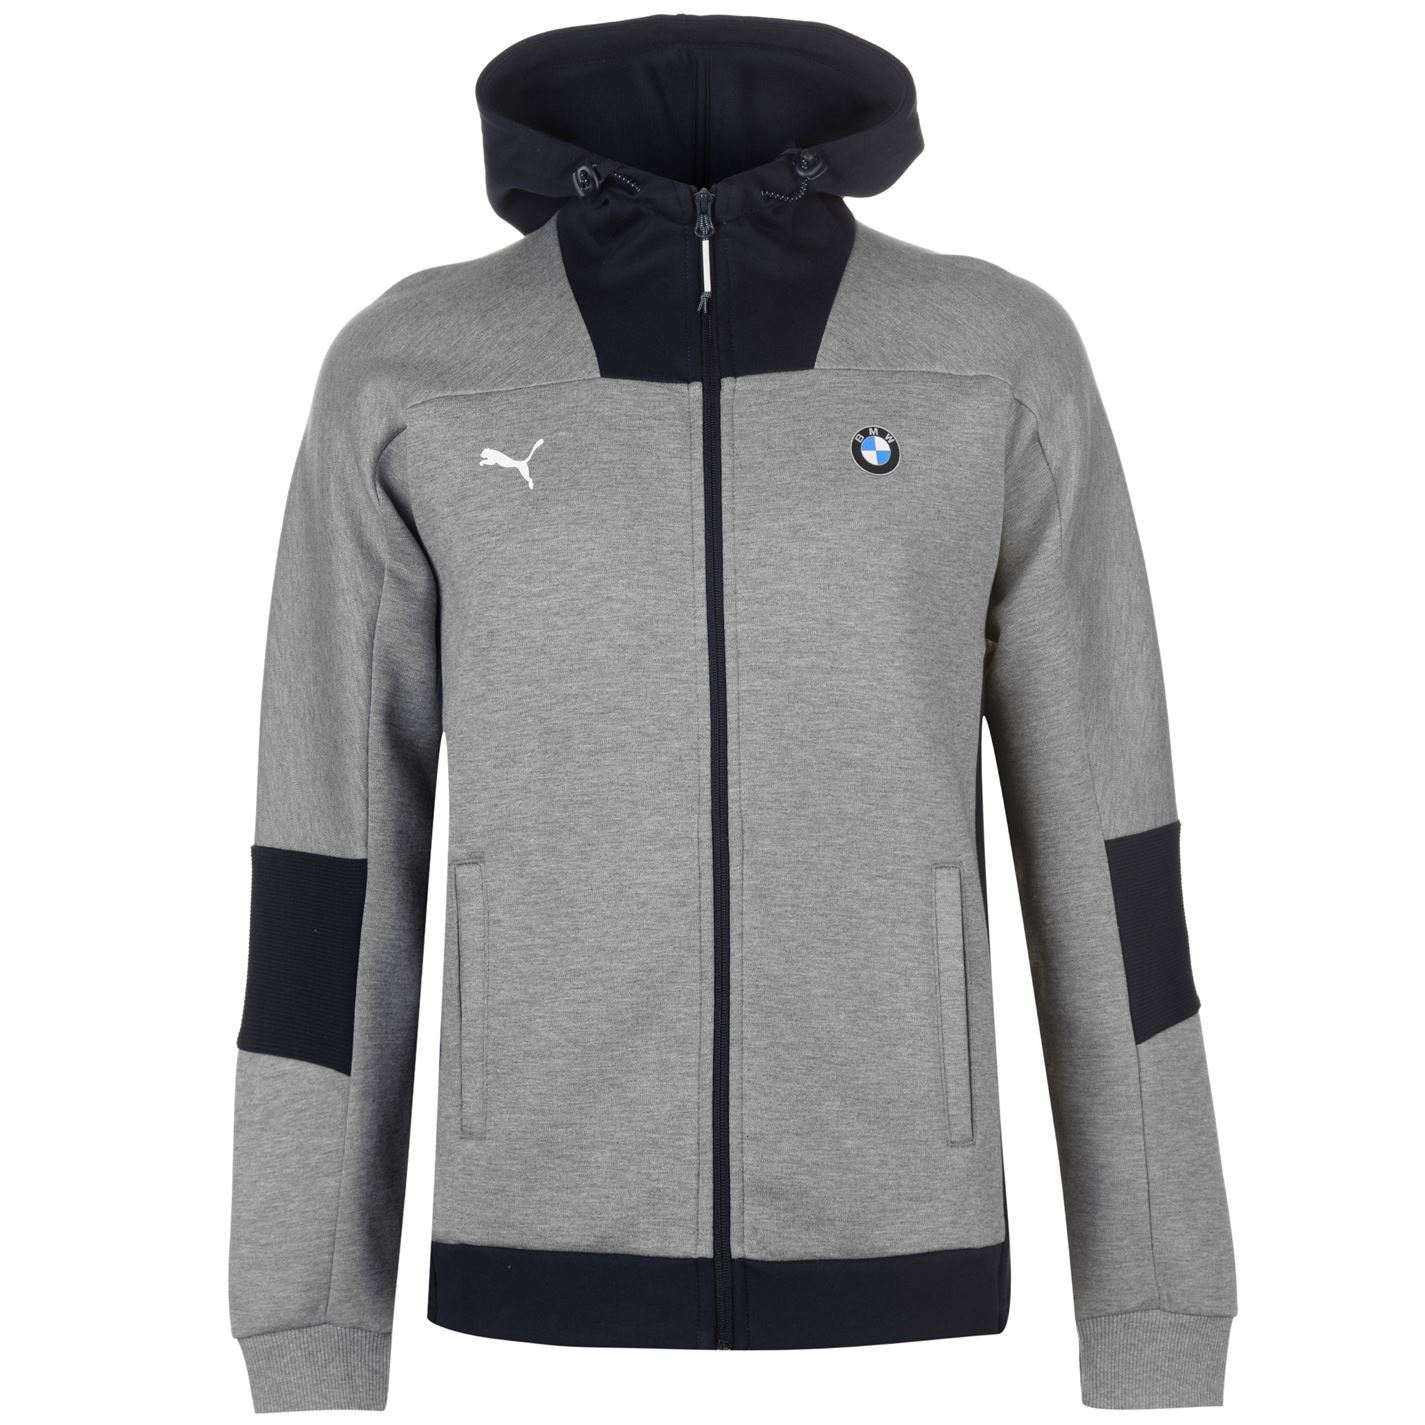 7f0f67106e9 ... Puma BMW Motorsport Full Zip Hoody Jacket Mens Hoodie Sweatshirt  Sweater Top